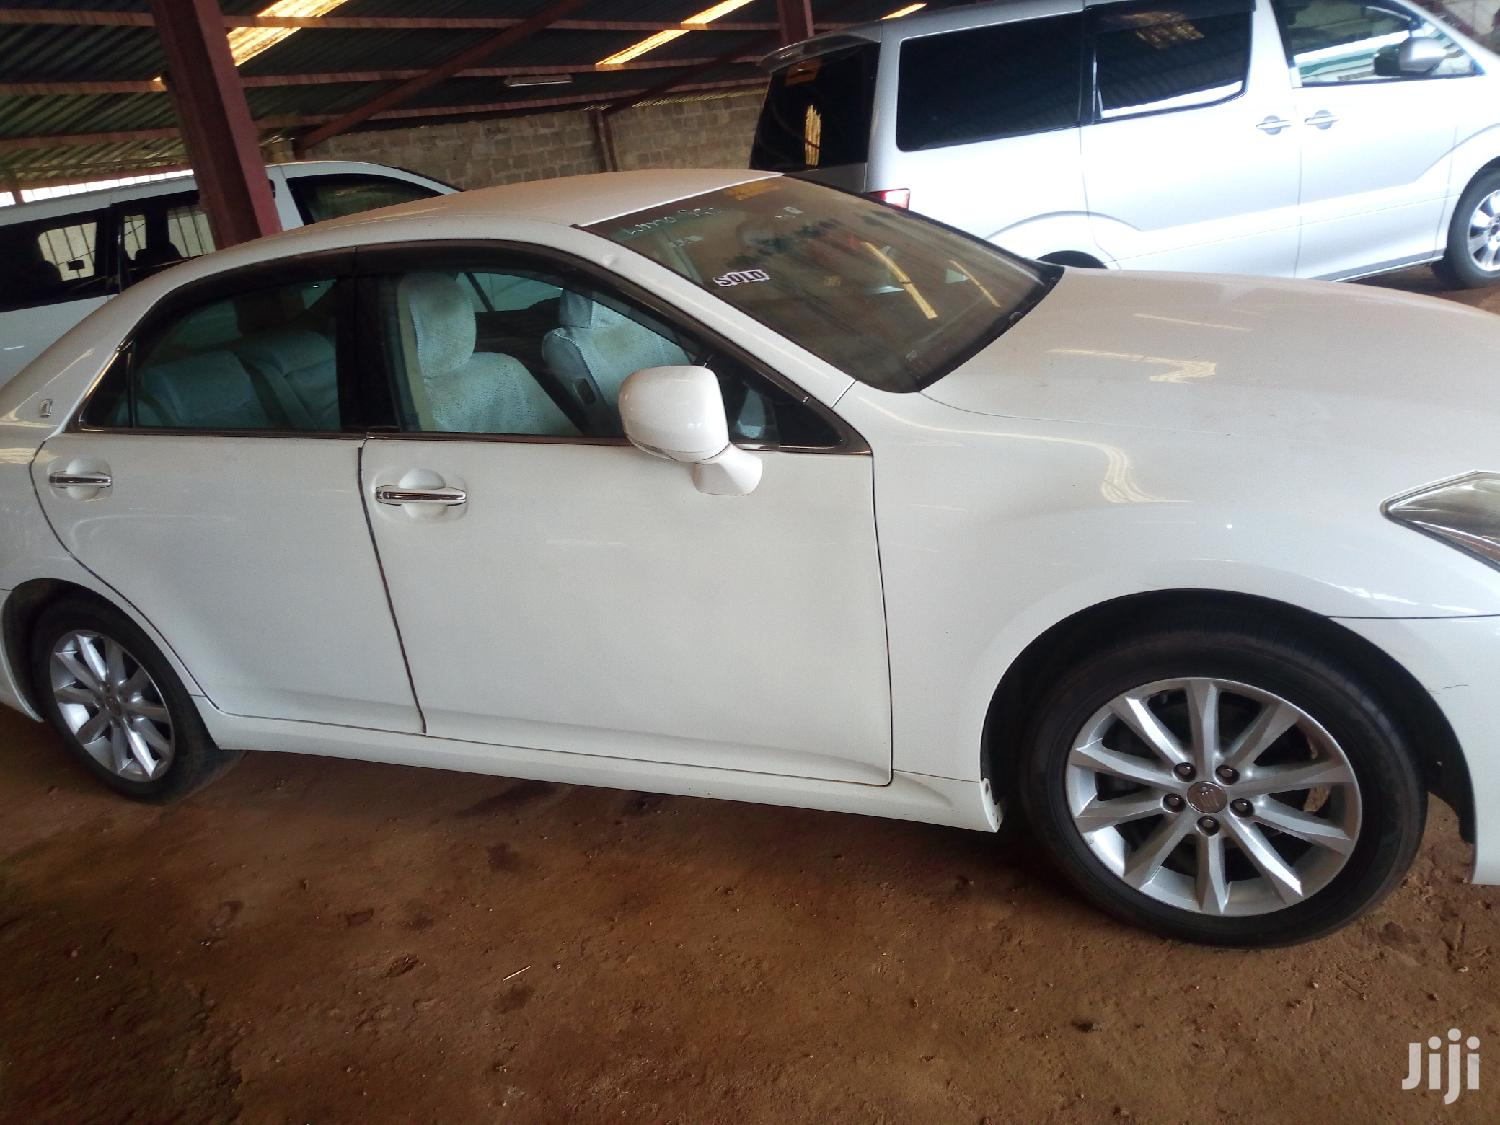 New Toyota Crown 2007 White | Cars for sale in Kampala, Central Region, Uganda